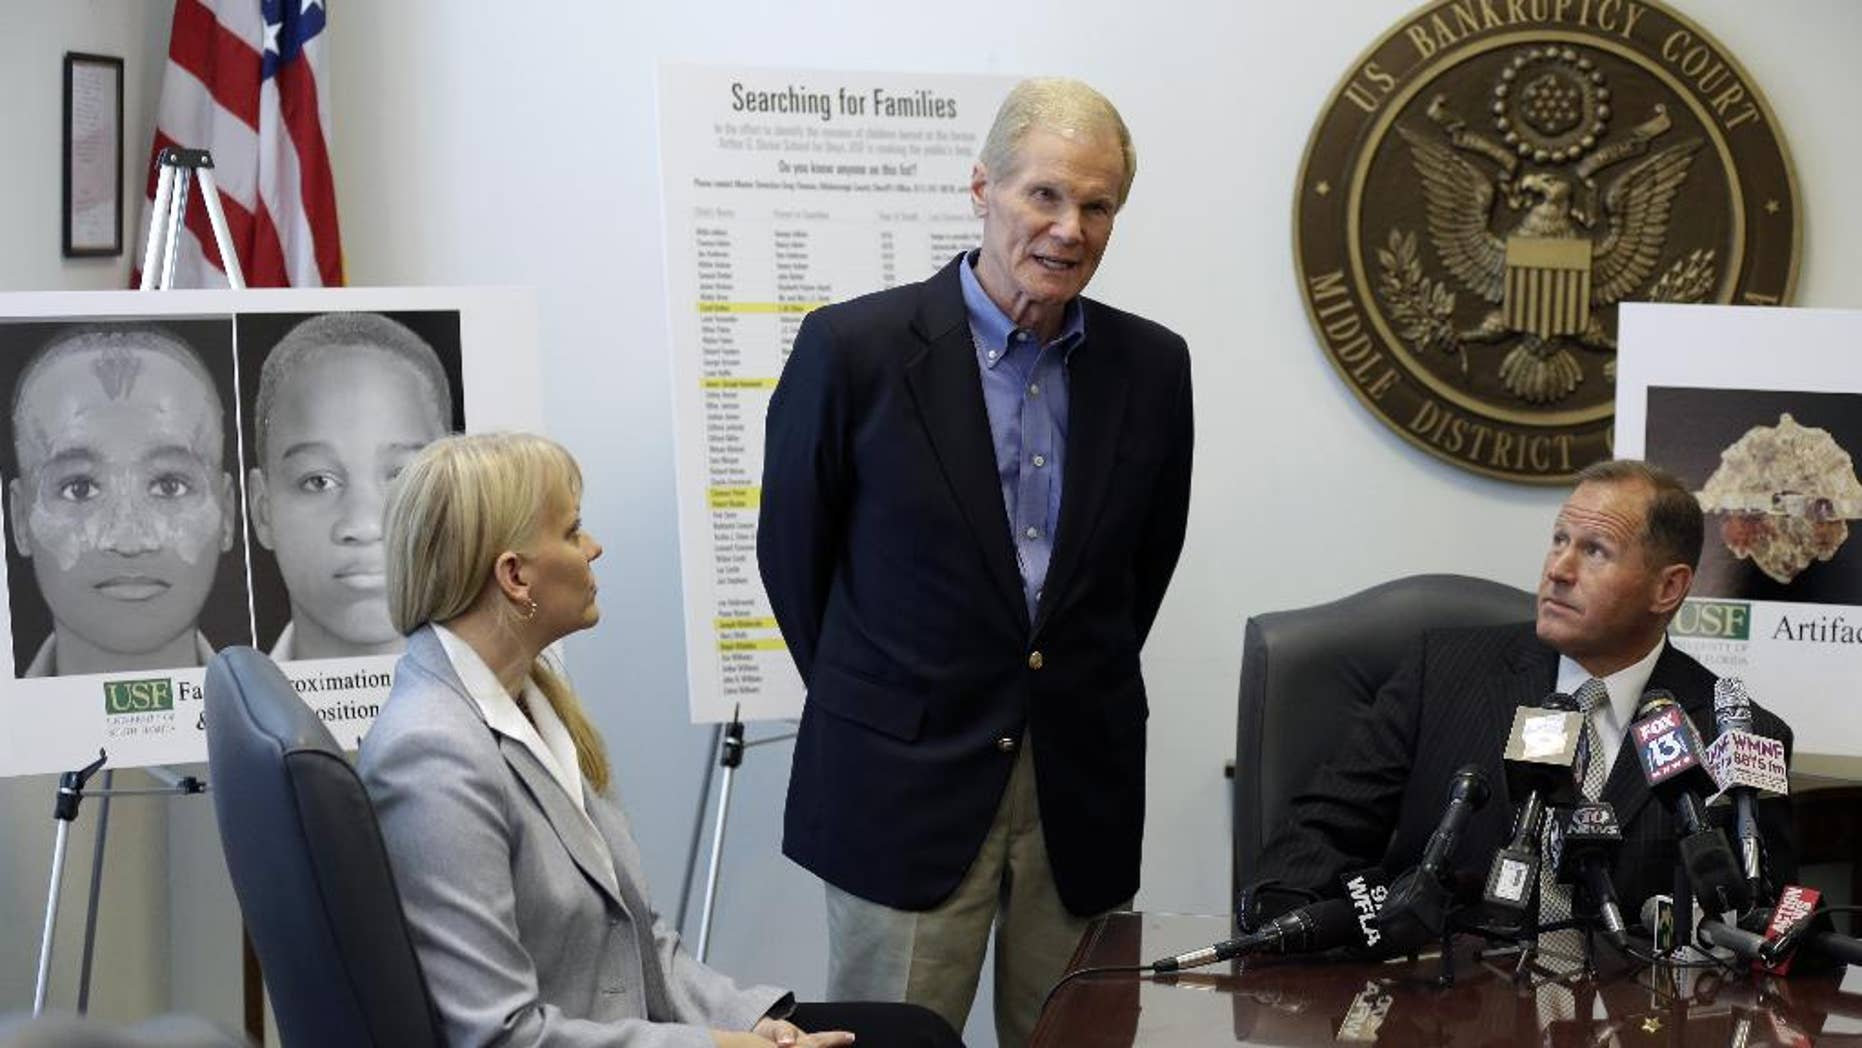 FILE - In this April 15, 2014, file photo, U.S. Sen. Bill Nelson, center, D-Fla., along with University of South Florida Associate Professor Erin Kimmerle, left, and Hillsborough County Sheriff David Gee, right, speak to the media about the on-going research being done at the Arthur G. Dozier School for Boys in Marianna, Fla., at the United States Courthouse, in Tampa, Fla. Researchers studying dozens of graves and deaths at a now closed Florida reform school describe a long history of horrific treatment of the boys. A report released by University of South Florida researchers this week identifies two more of the people buried in the graves. (AP Photo/Chris O'Meara, File)